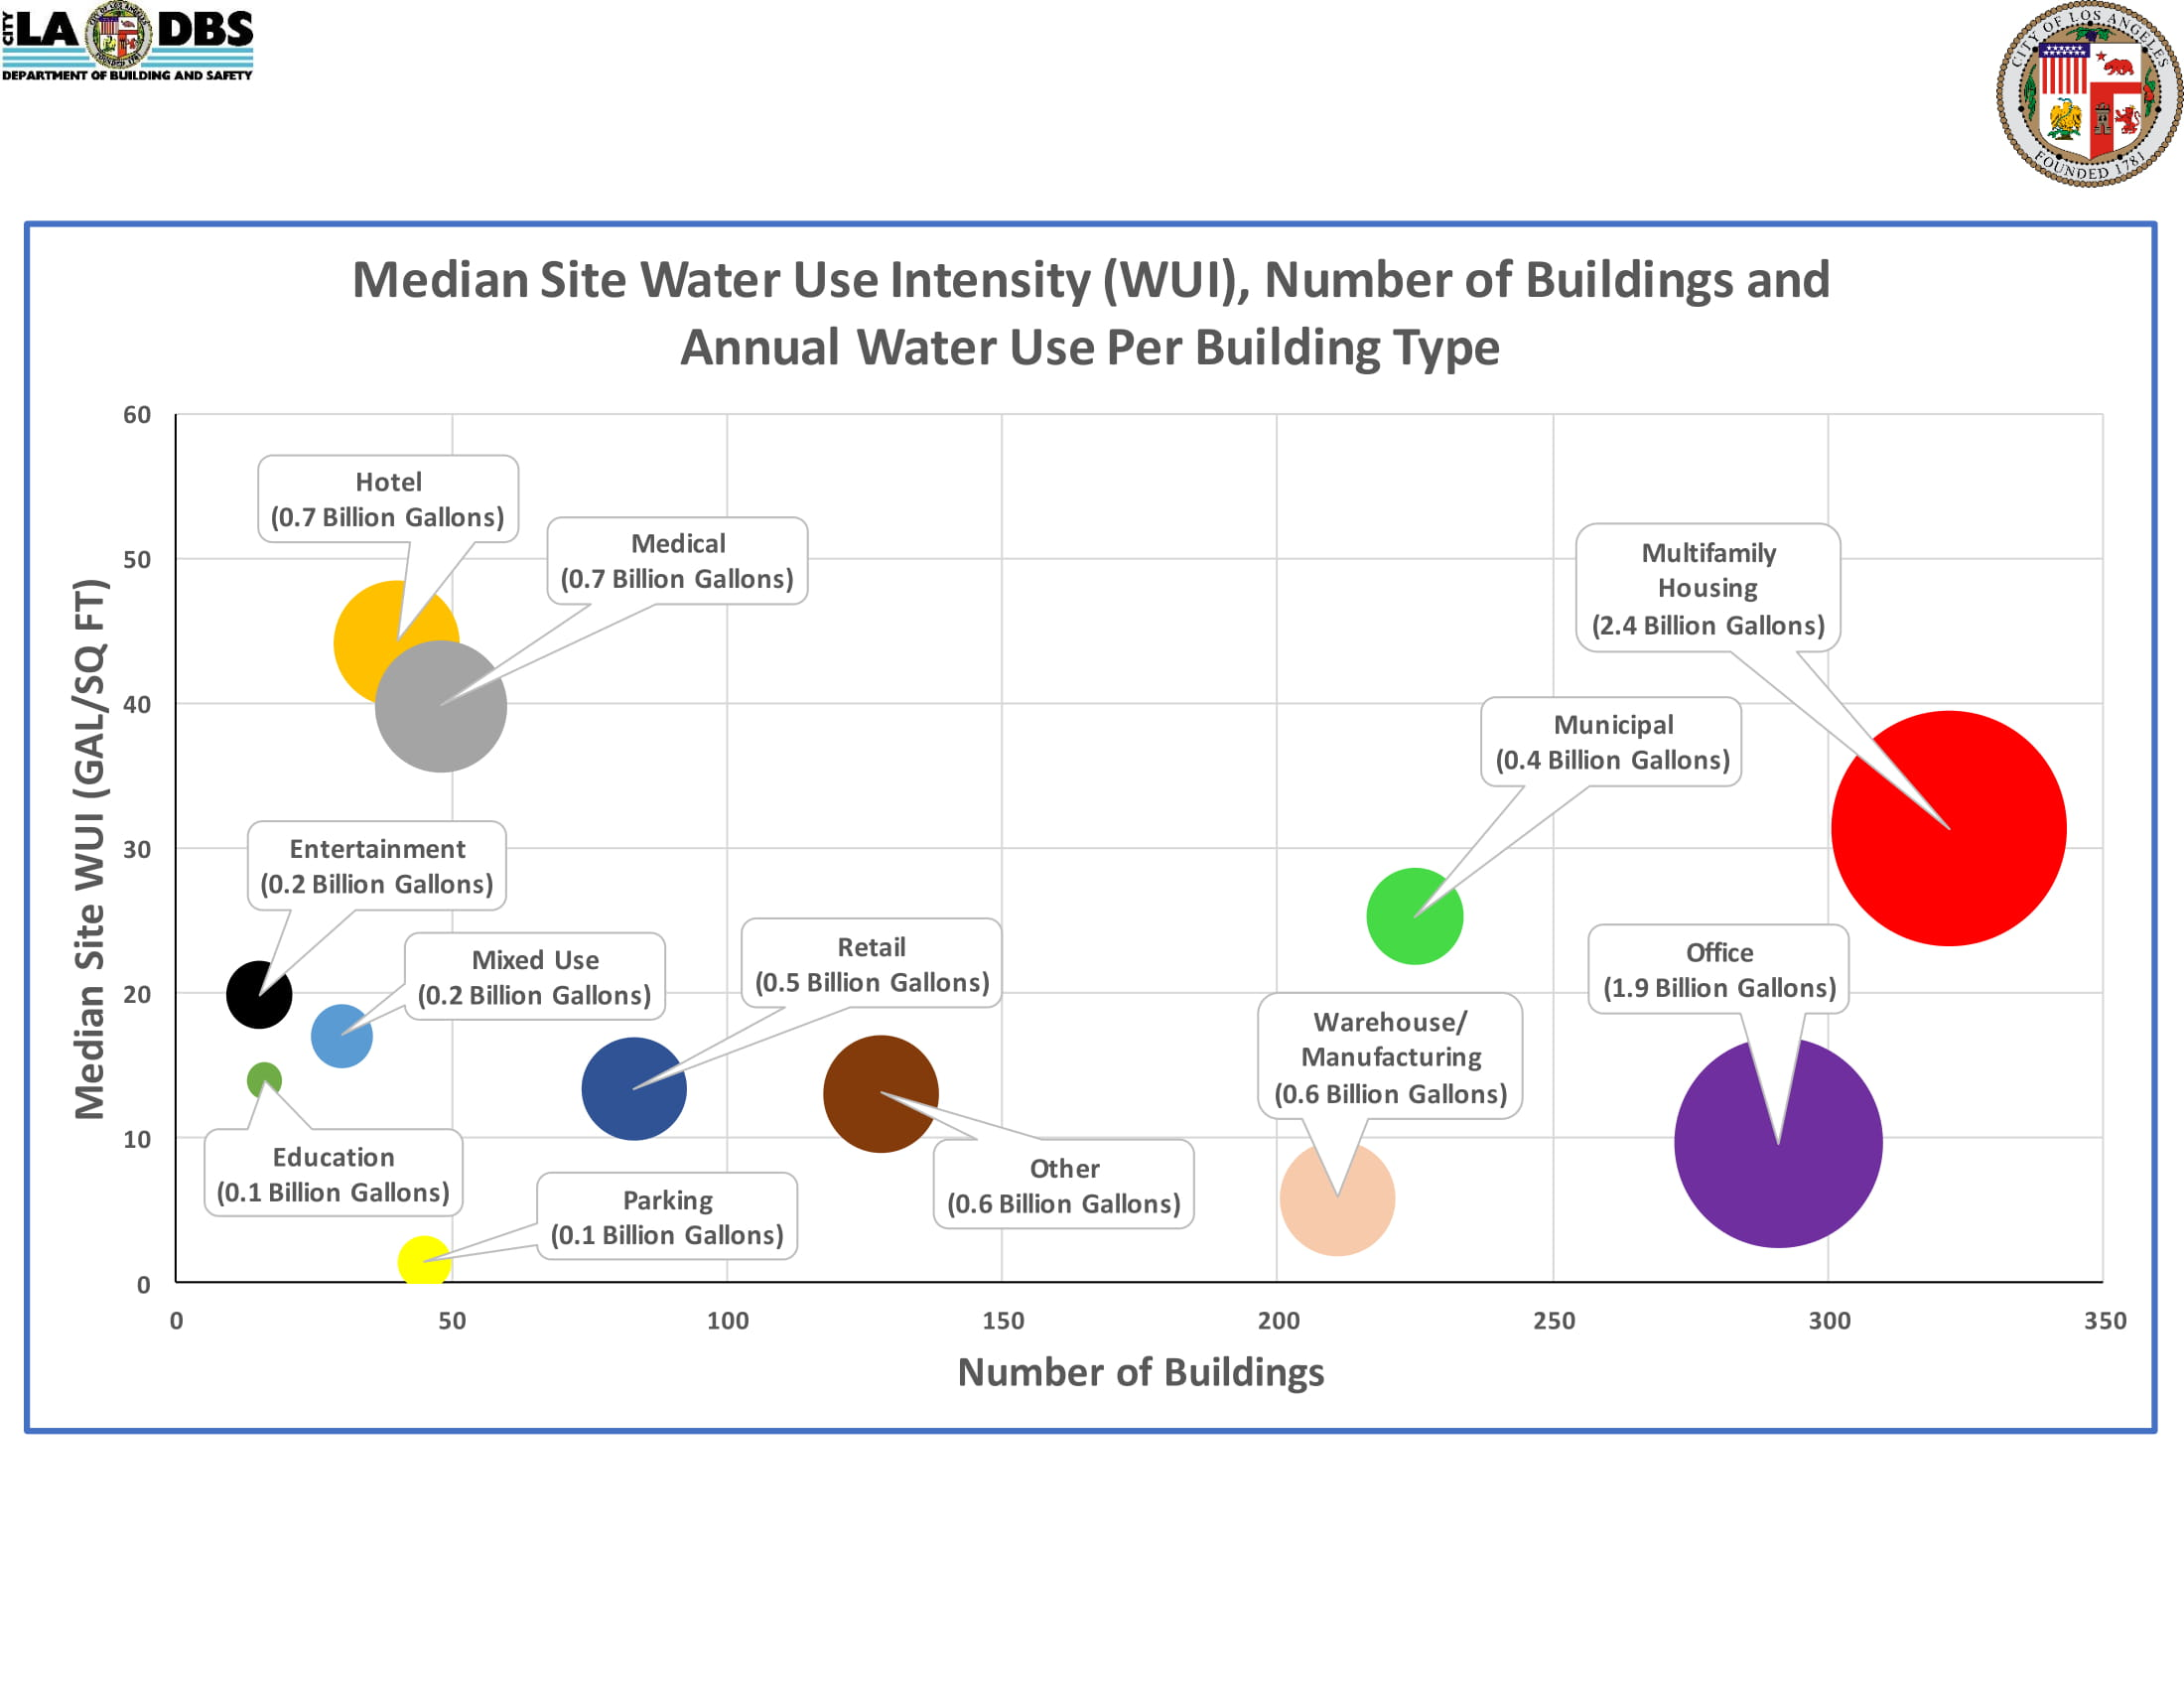 Median Site Water Use Intensity (WUI) Number of Buildings and Annual Water Use Per Building Type